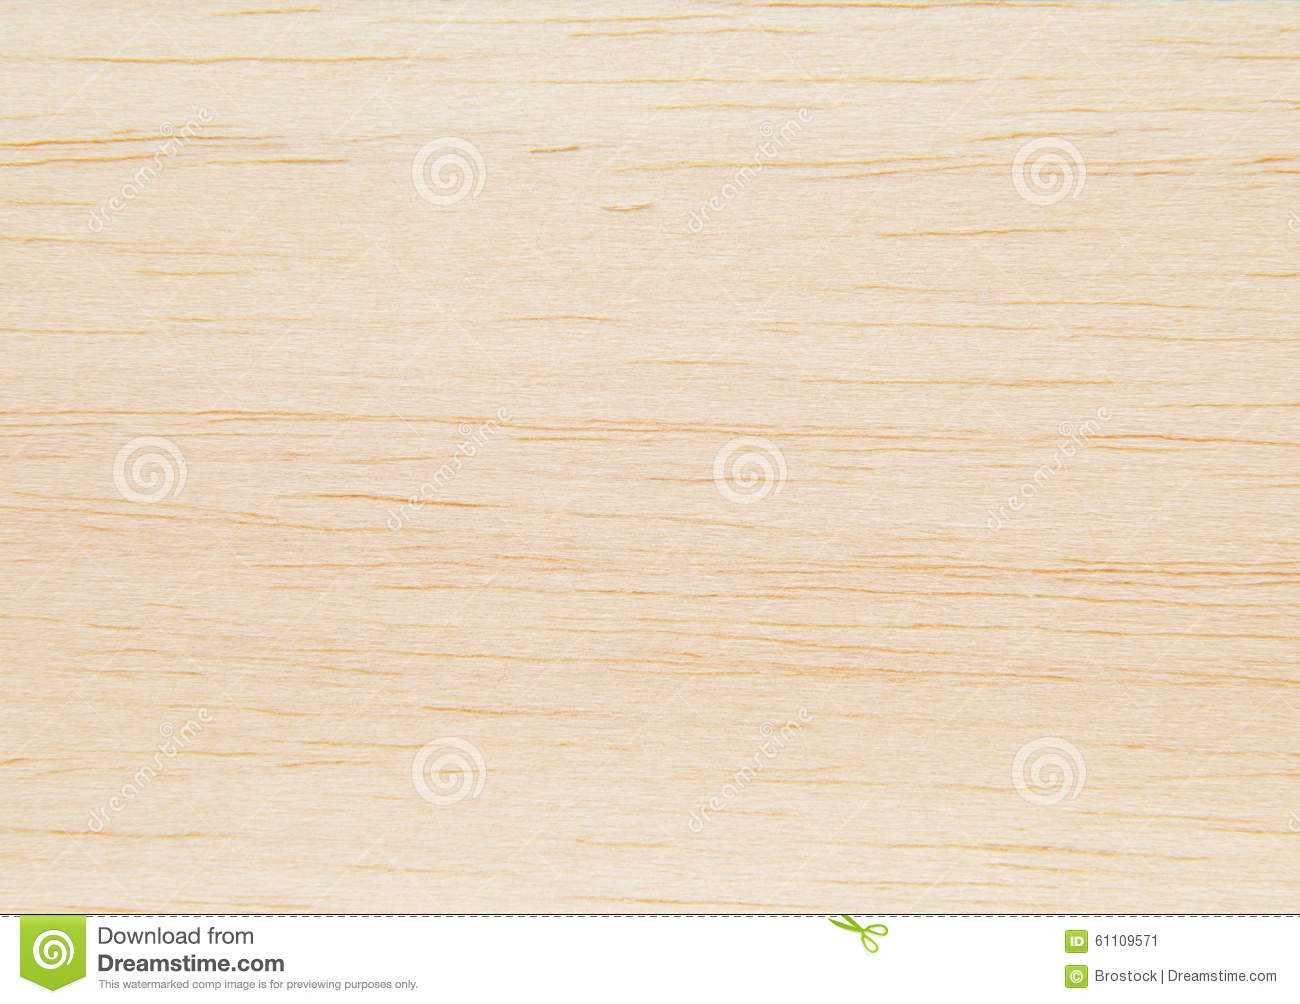 balsa wood stock image image of birch feature people 61109571. Black Bedroom Furniture Sets. Home Design Ideas